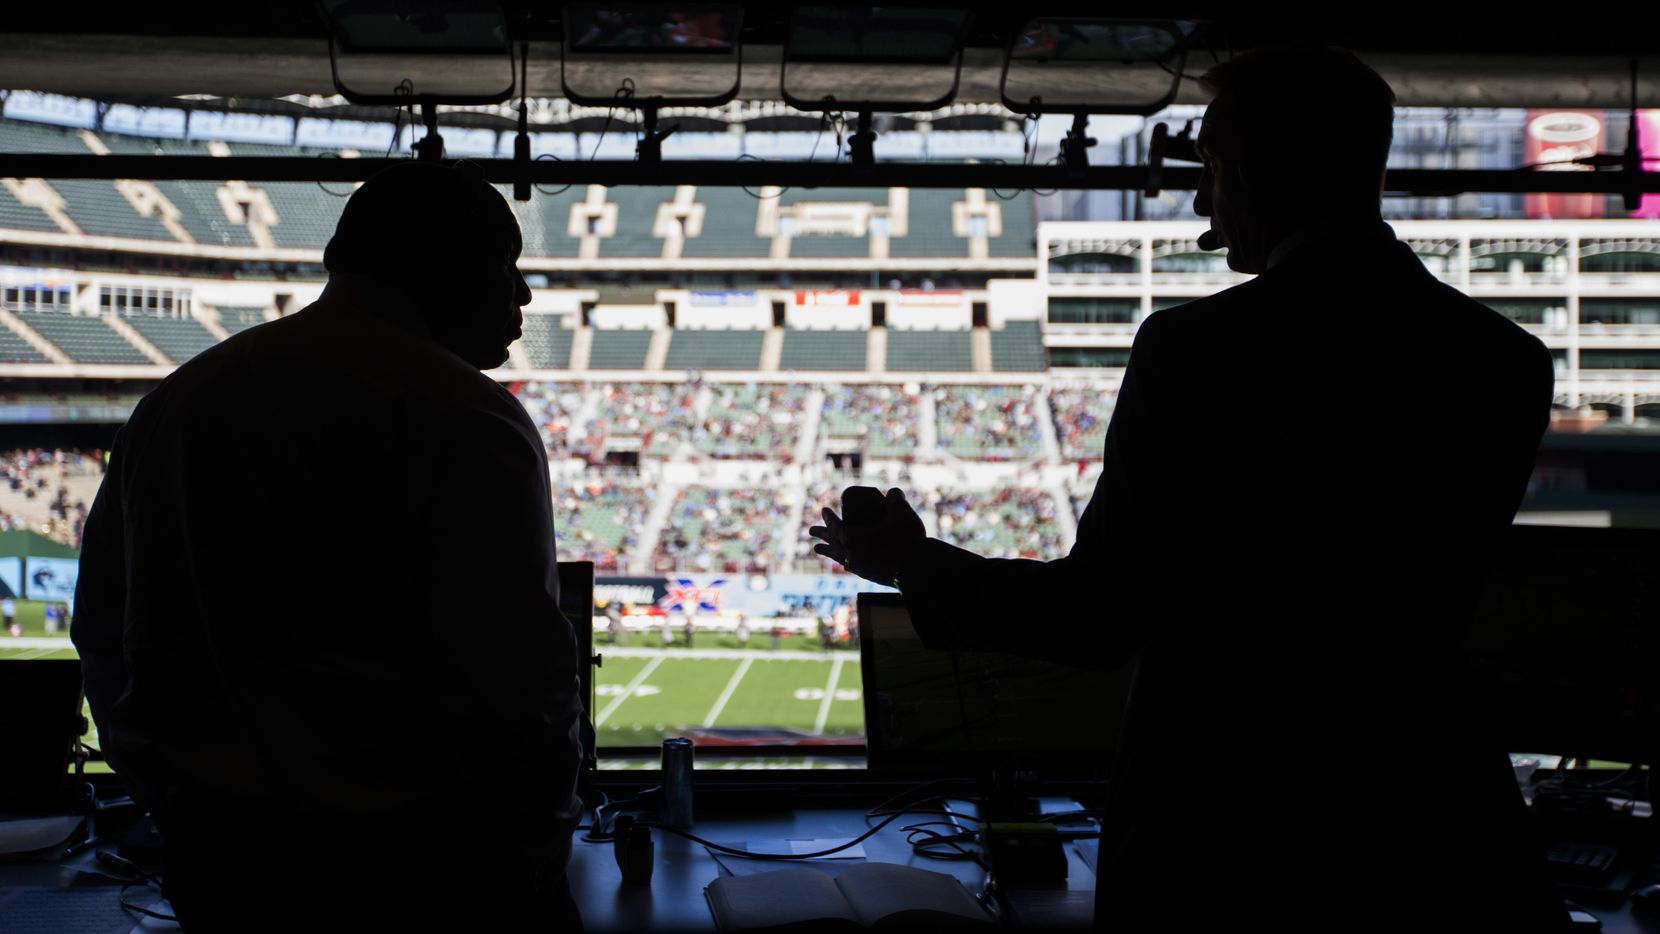 FOX Sports broadcasters Curt Menefee (left) and Joel Klatt call an XFL game between the Dallas Renegades and the New York Guardians on Saturday, March 7, 2020 at Globe Life Park in Arlington. (Ashley Landis/The Dallas Morning News)